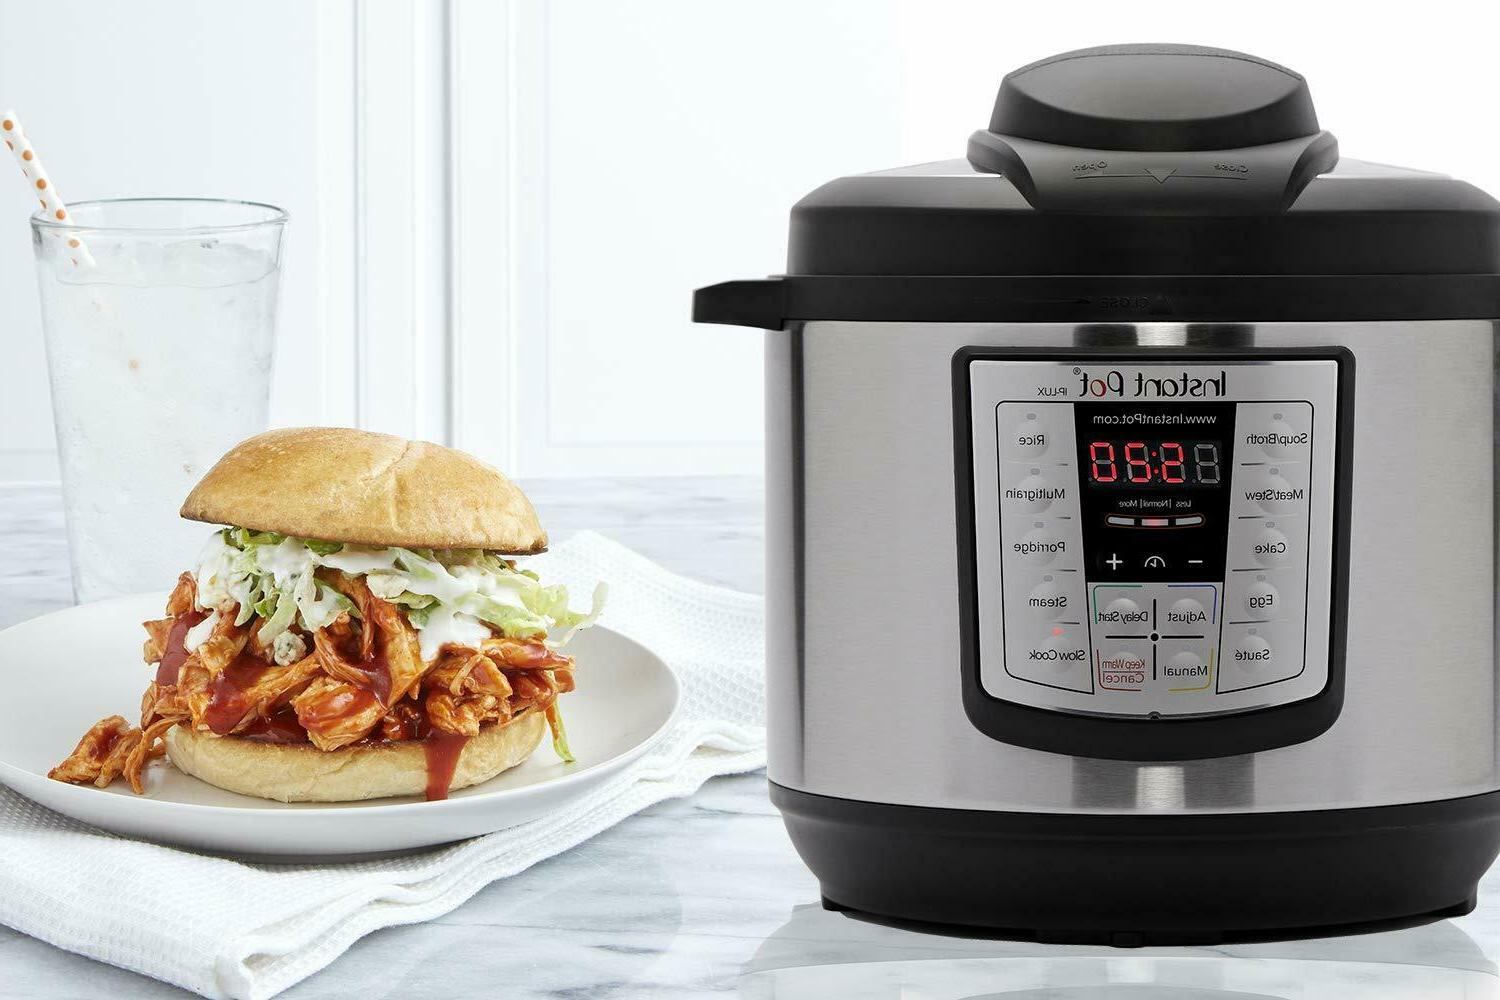 6 Qt 6-in-1 Programmable Pressure Cooker, Slow Cooker, Rice